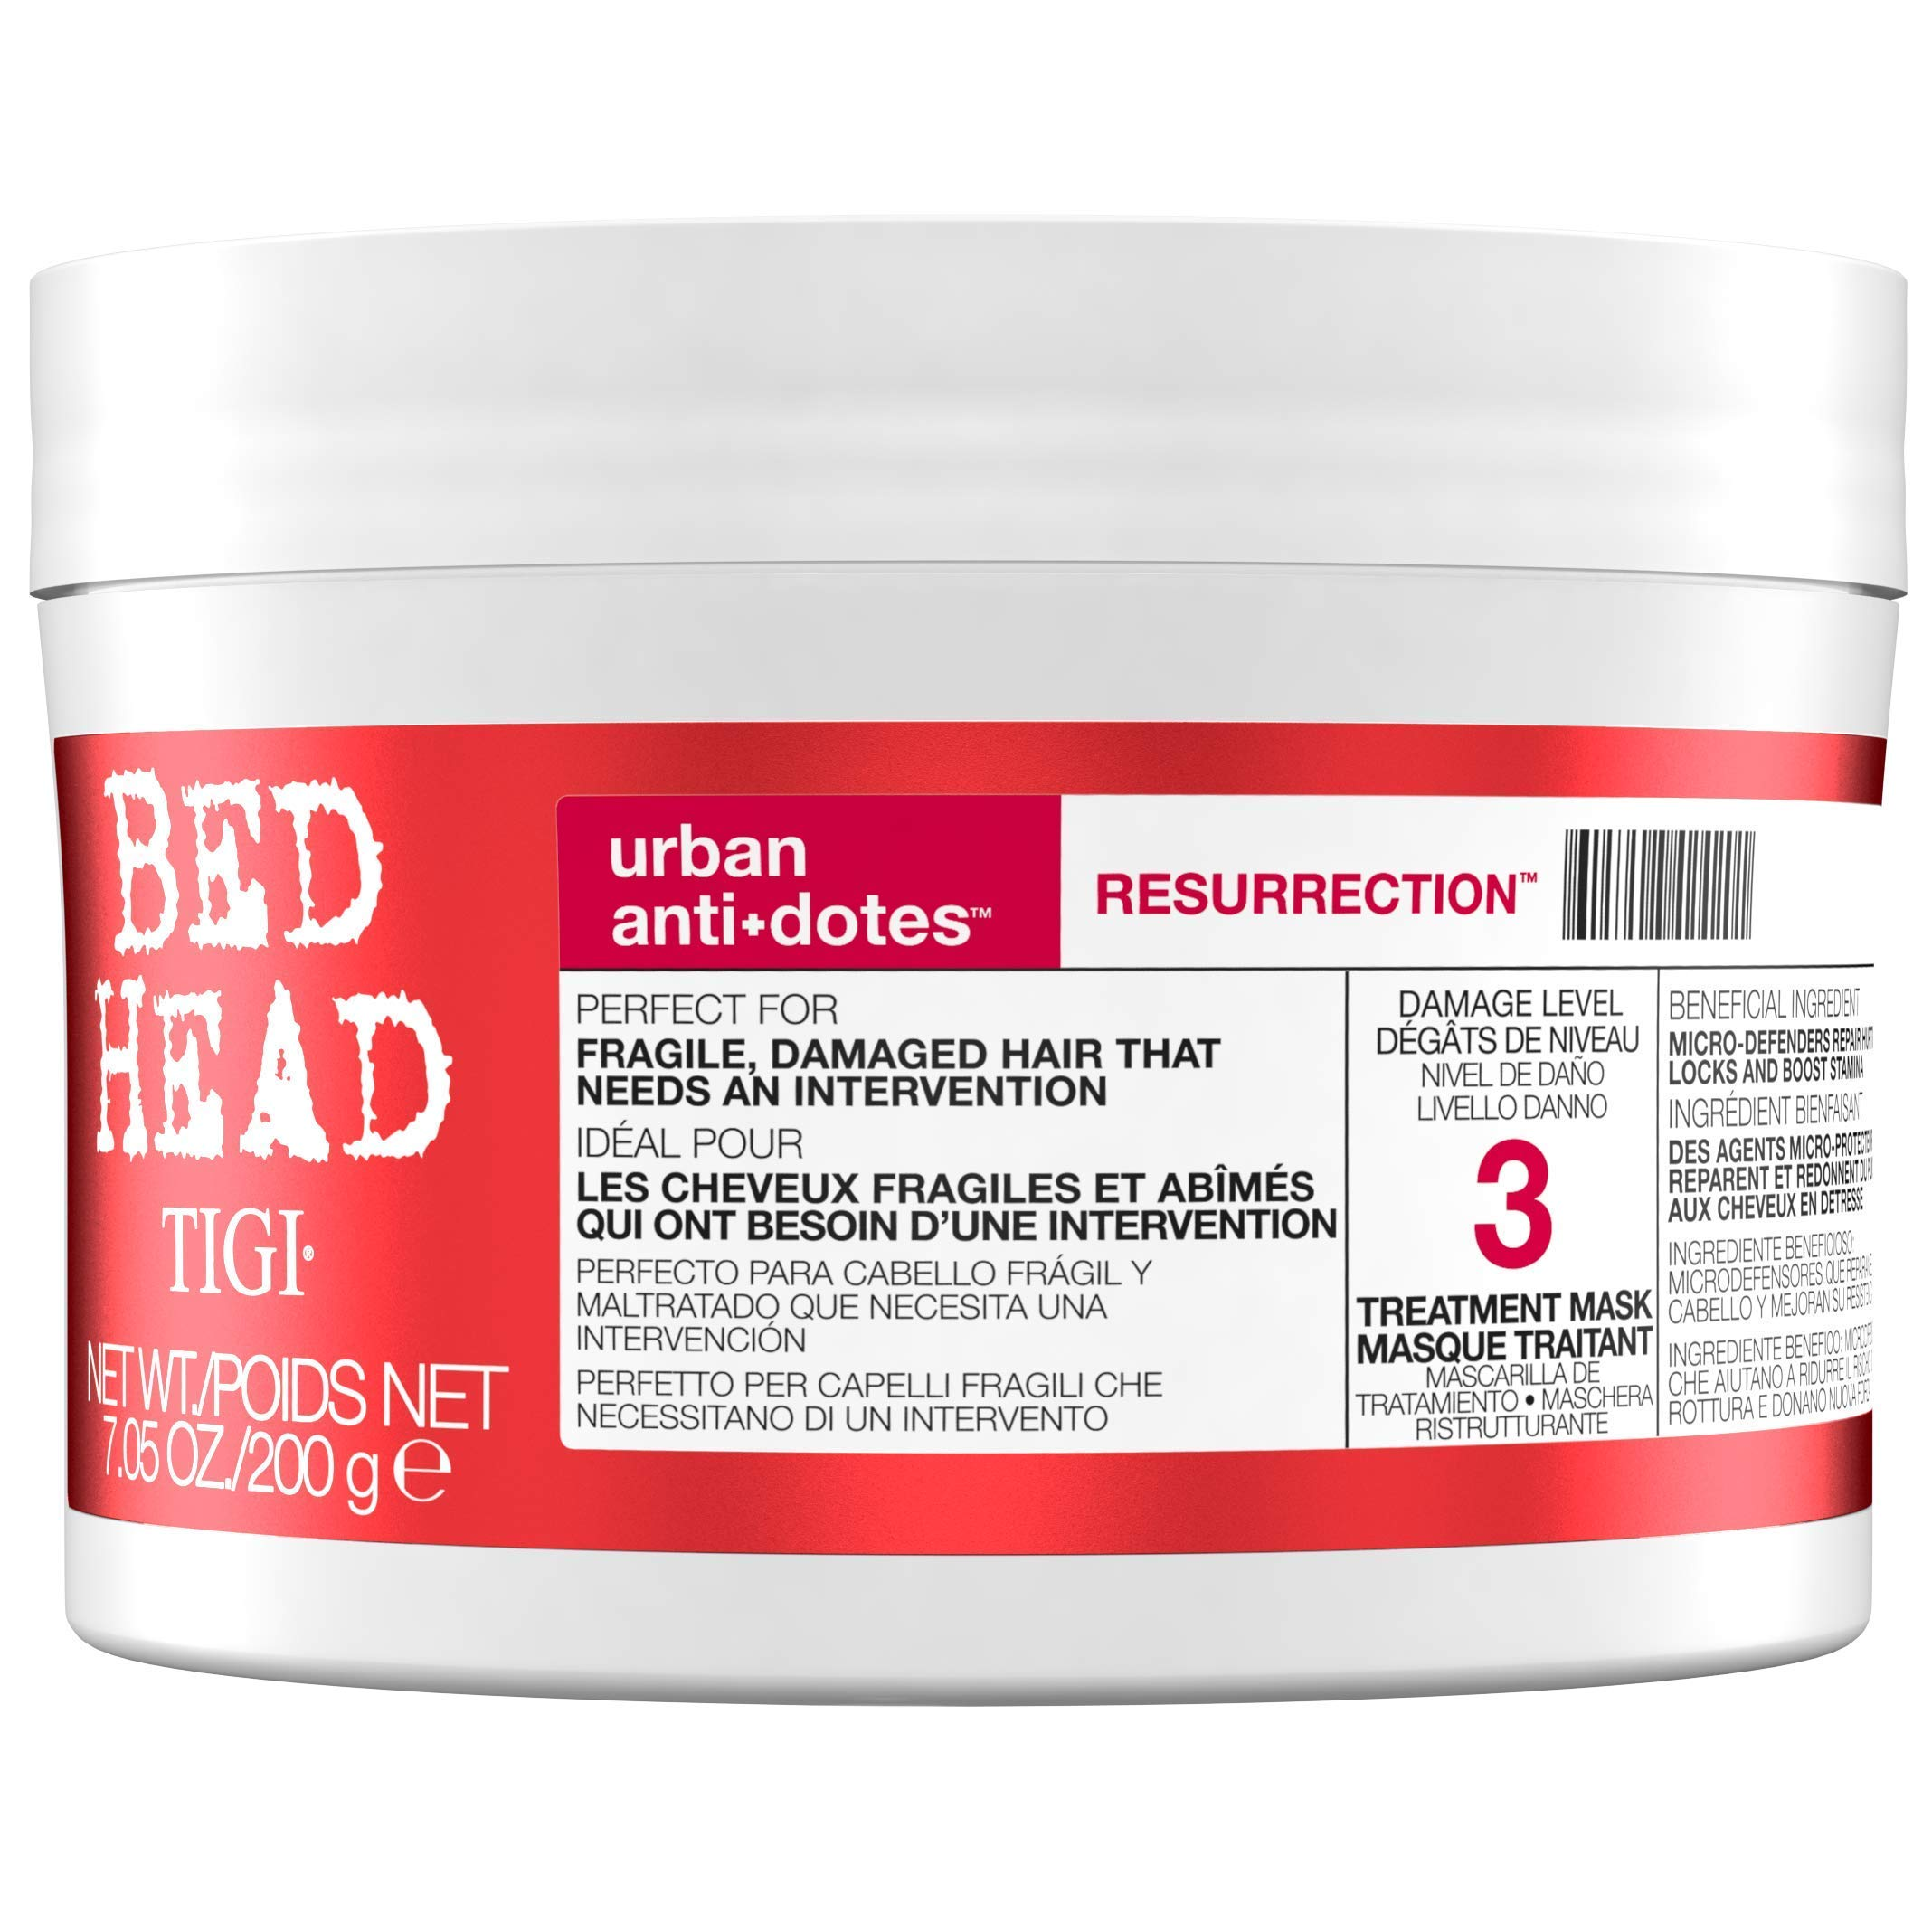 Bed Head by Tigi Urban Antidotes Resurrection Hair Mask for Damaged Hair 200g